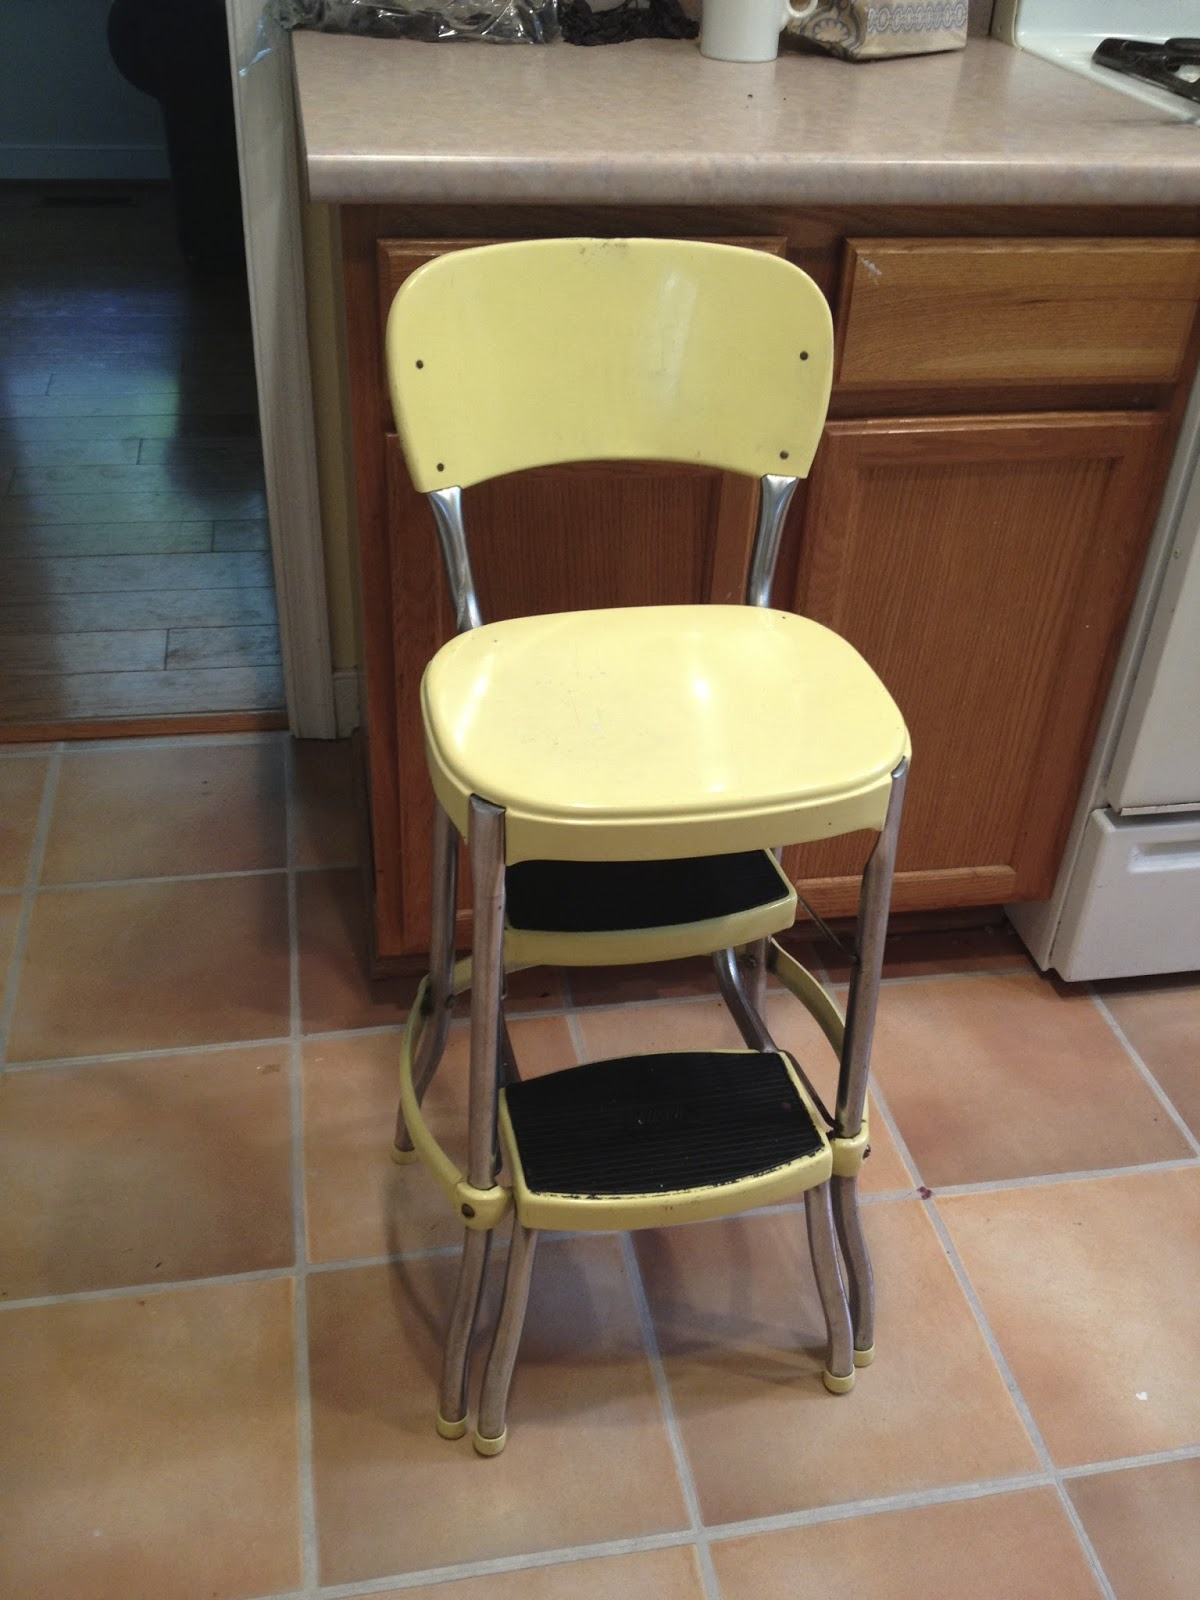 chairs for sale craigslist chair massage nyc 1001 goals furniture